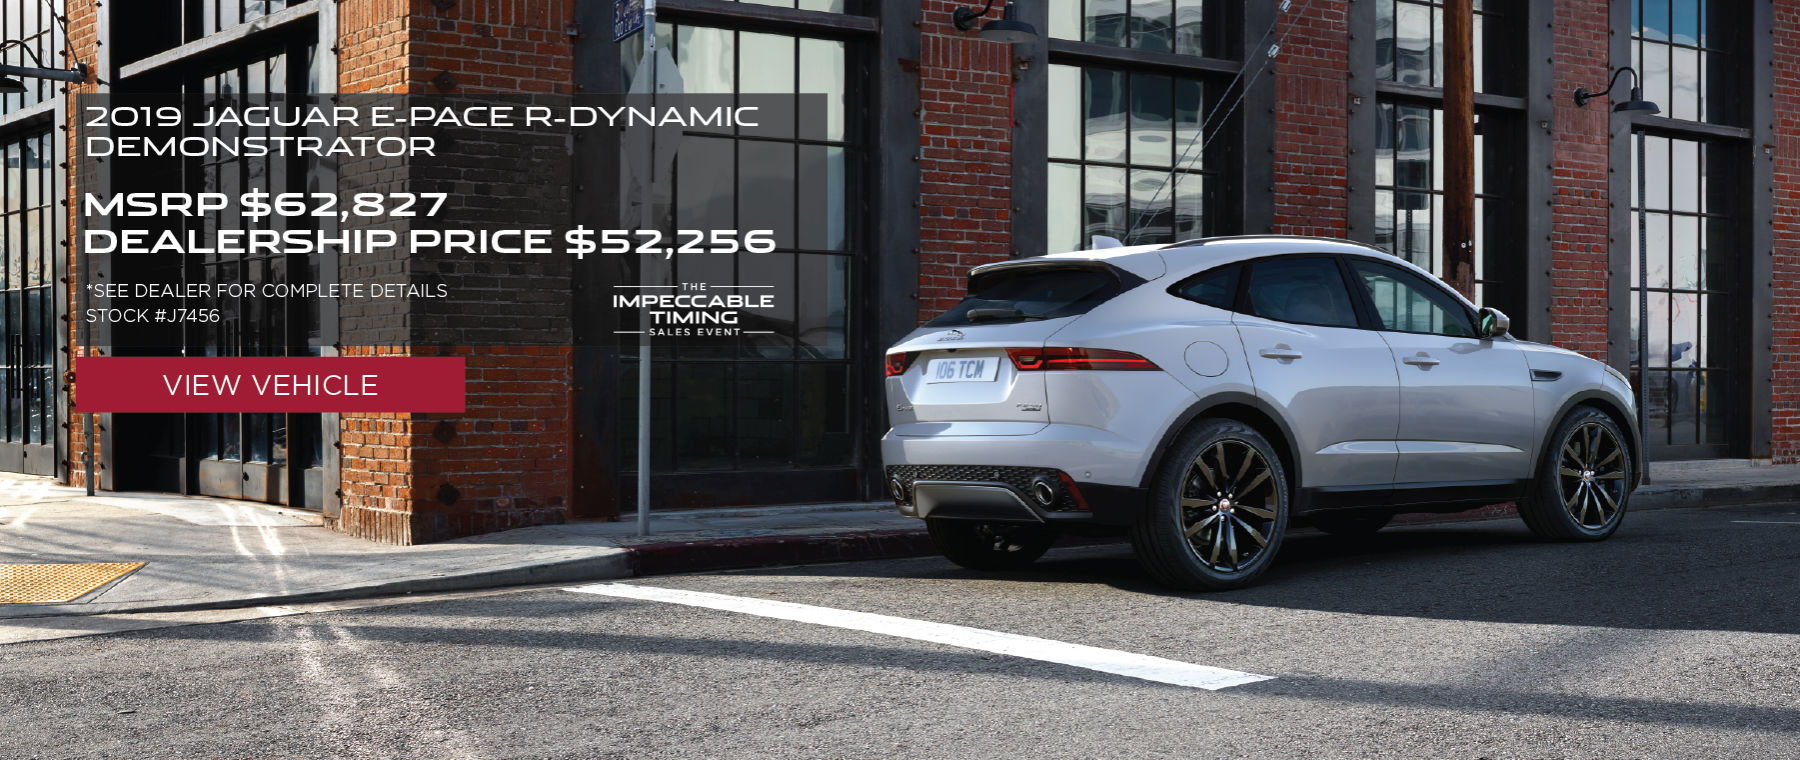 White 2019 Jaguar E-PACE R-Dynamic on street in front of building. MSRP $62,827 Dealership Price $ 52,256 Stock # J7456. See dealer for complete details. Offer expires 2/29/2020